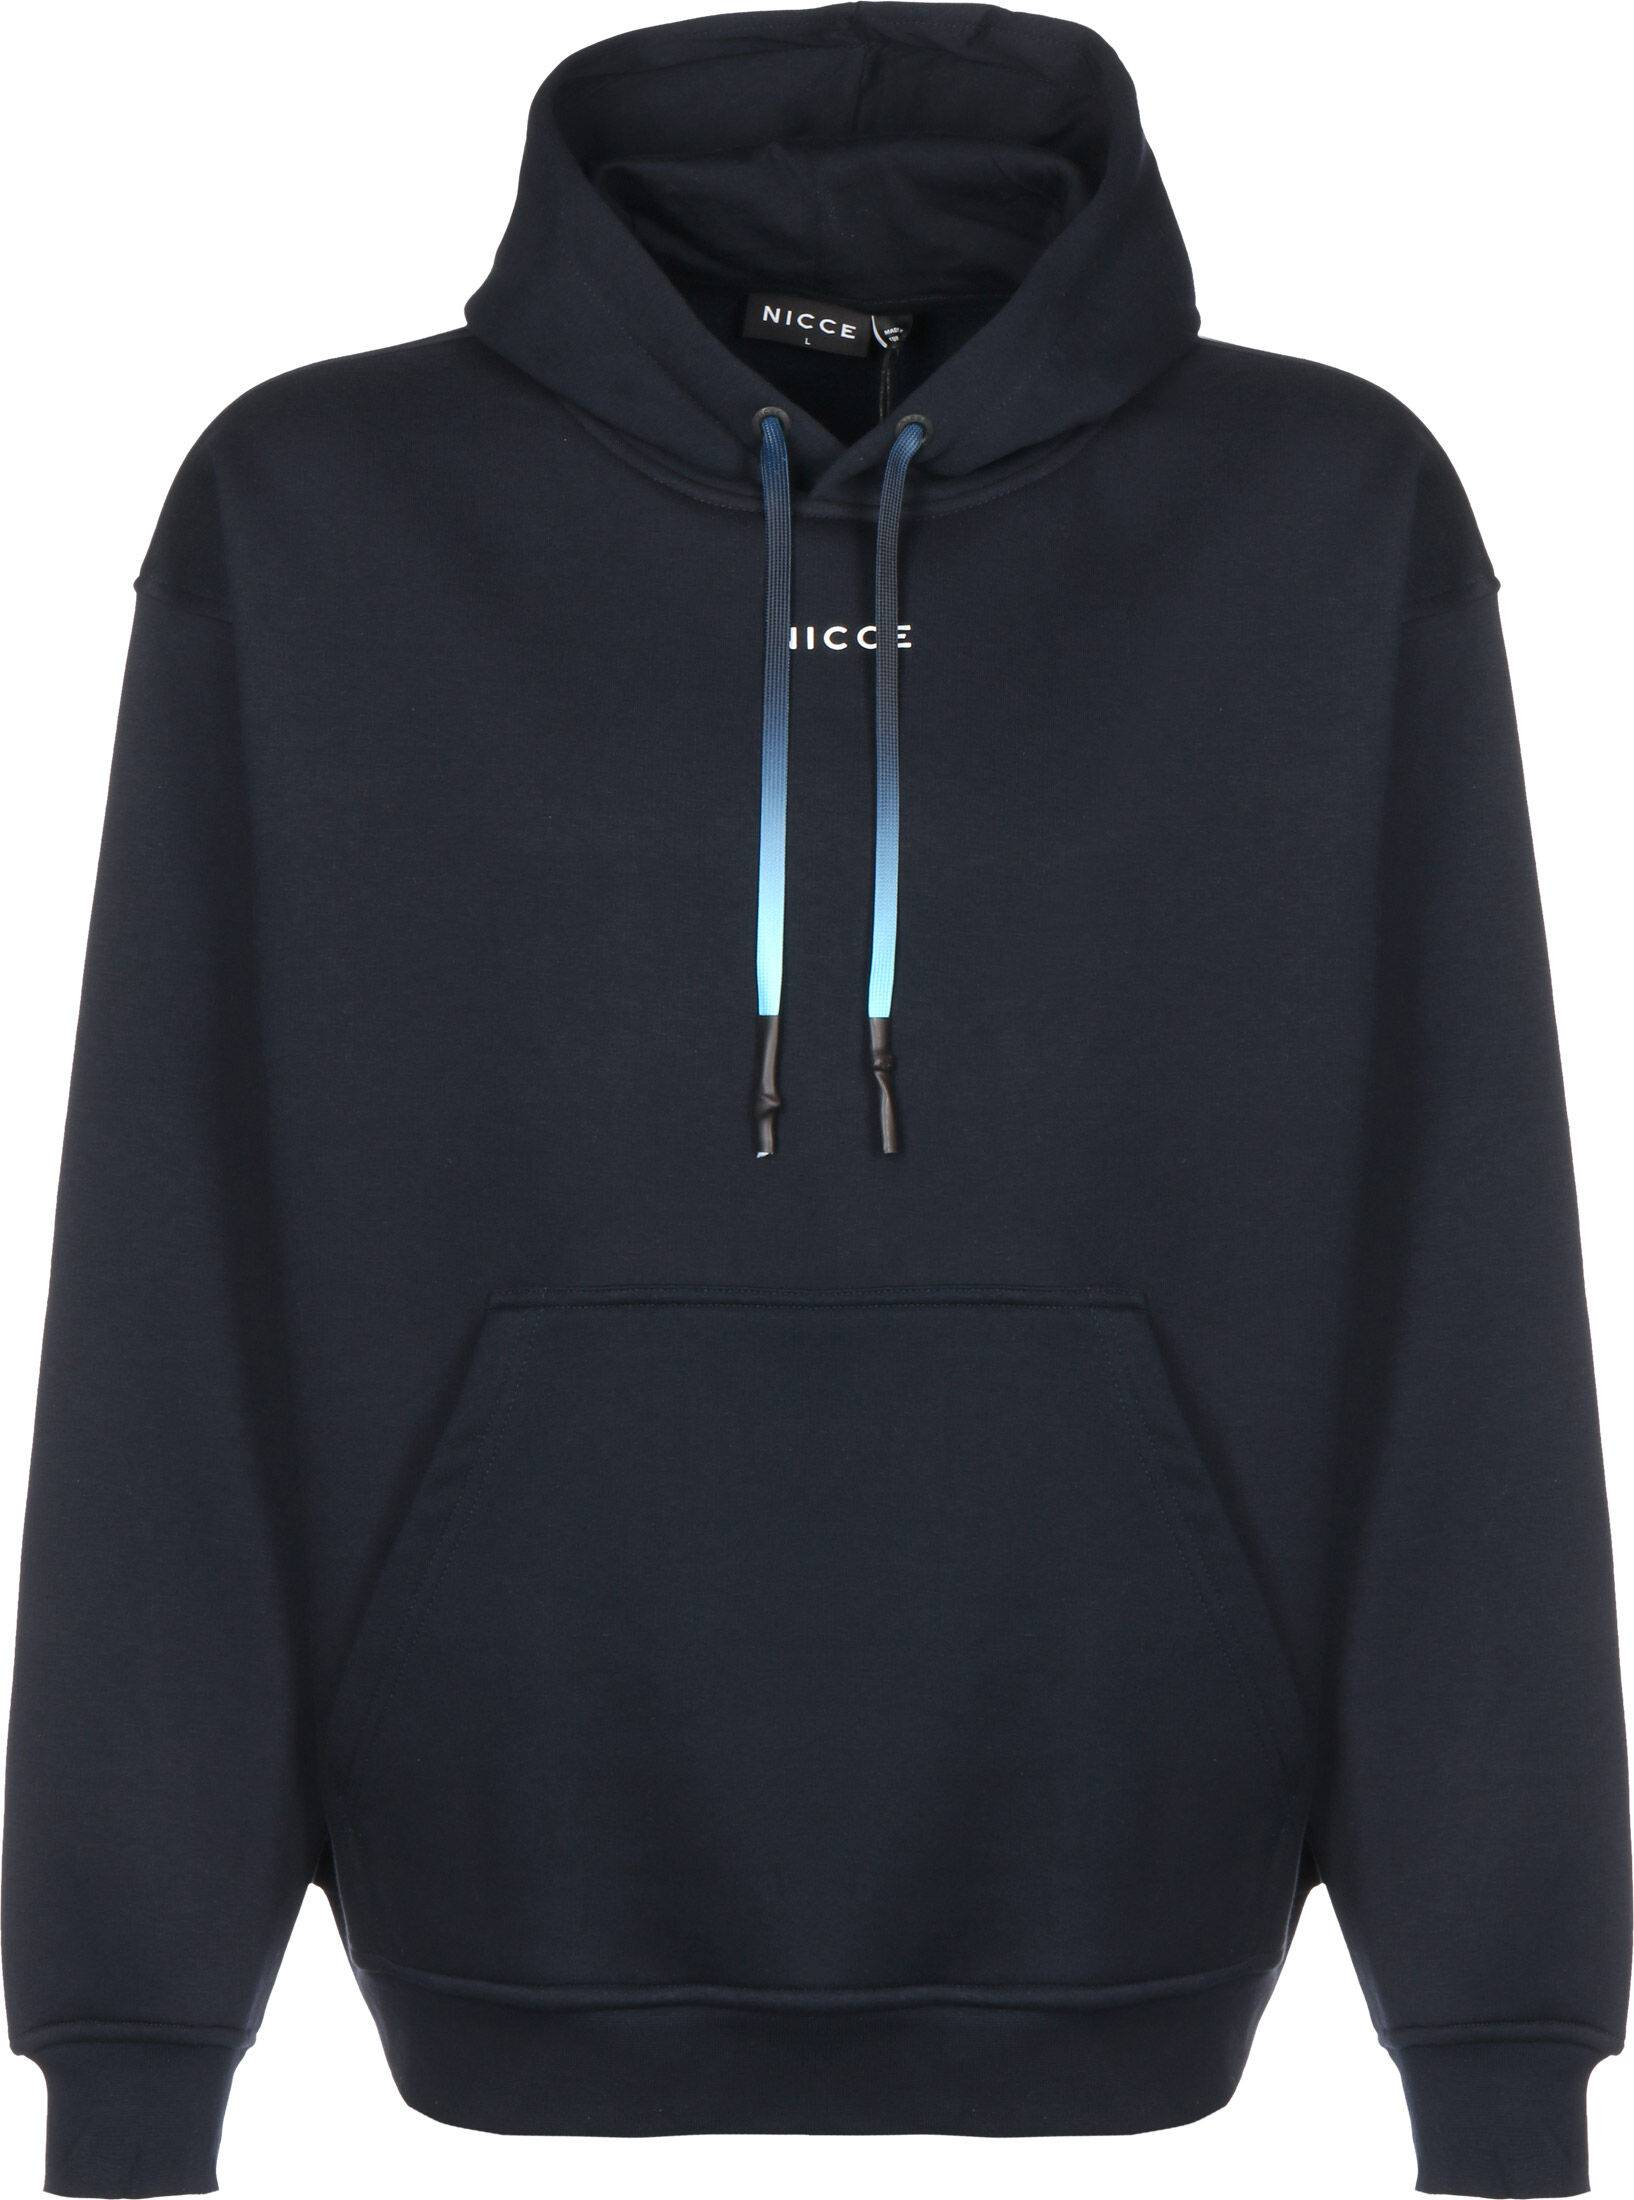 Nicce Zone, taille M, homme, bleu